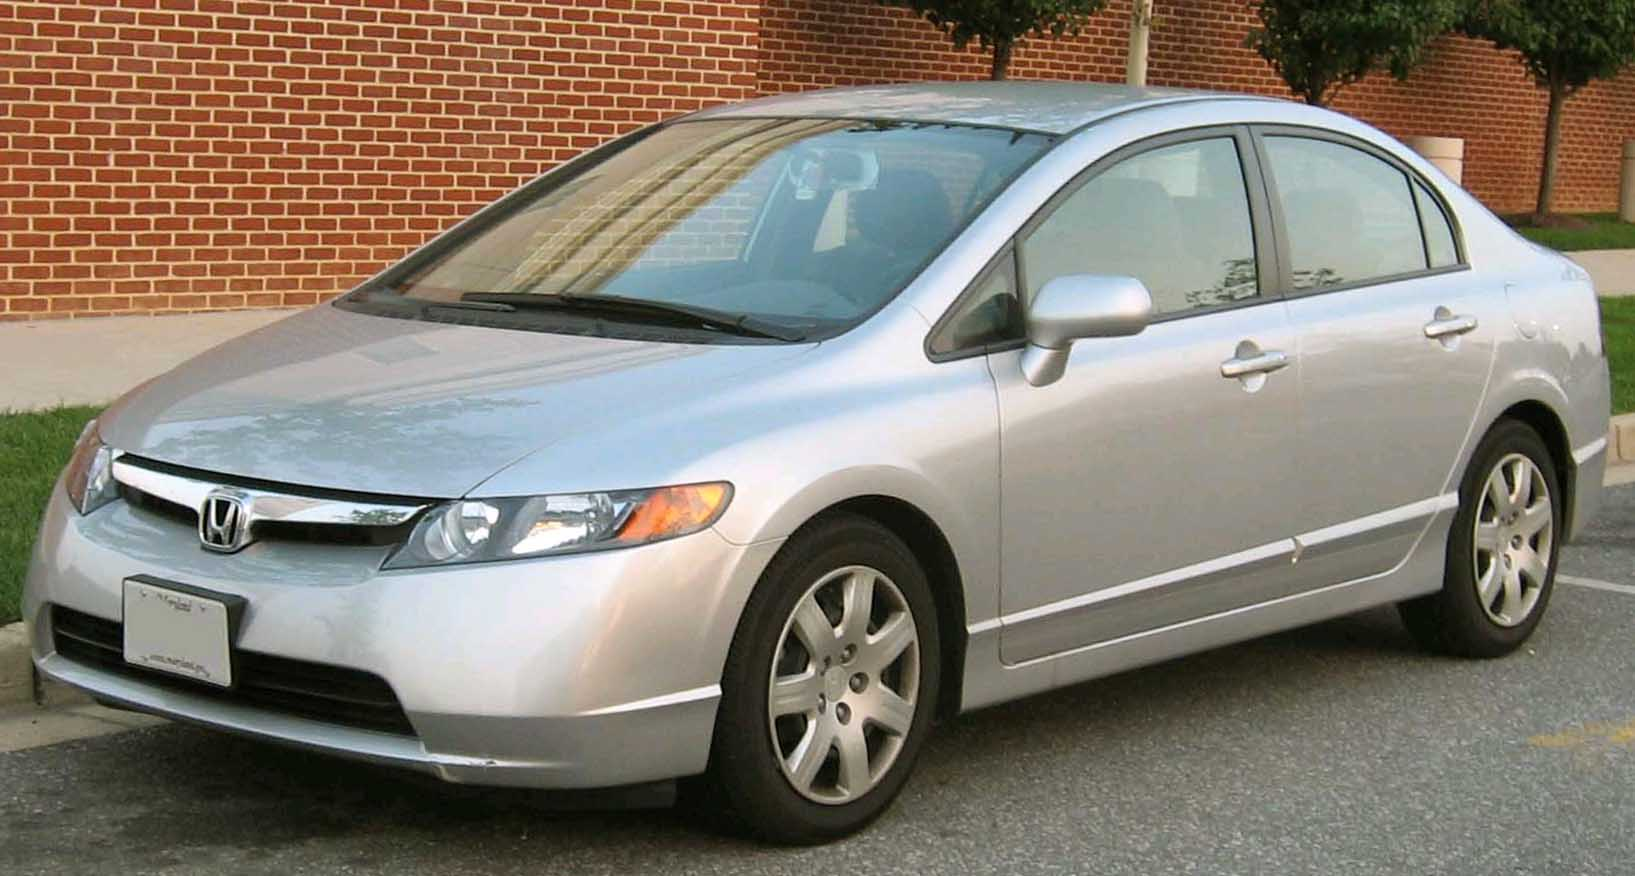 honda city sedan 2005 pics #4